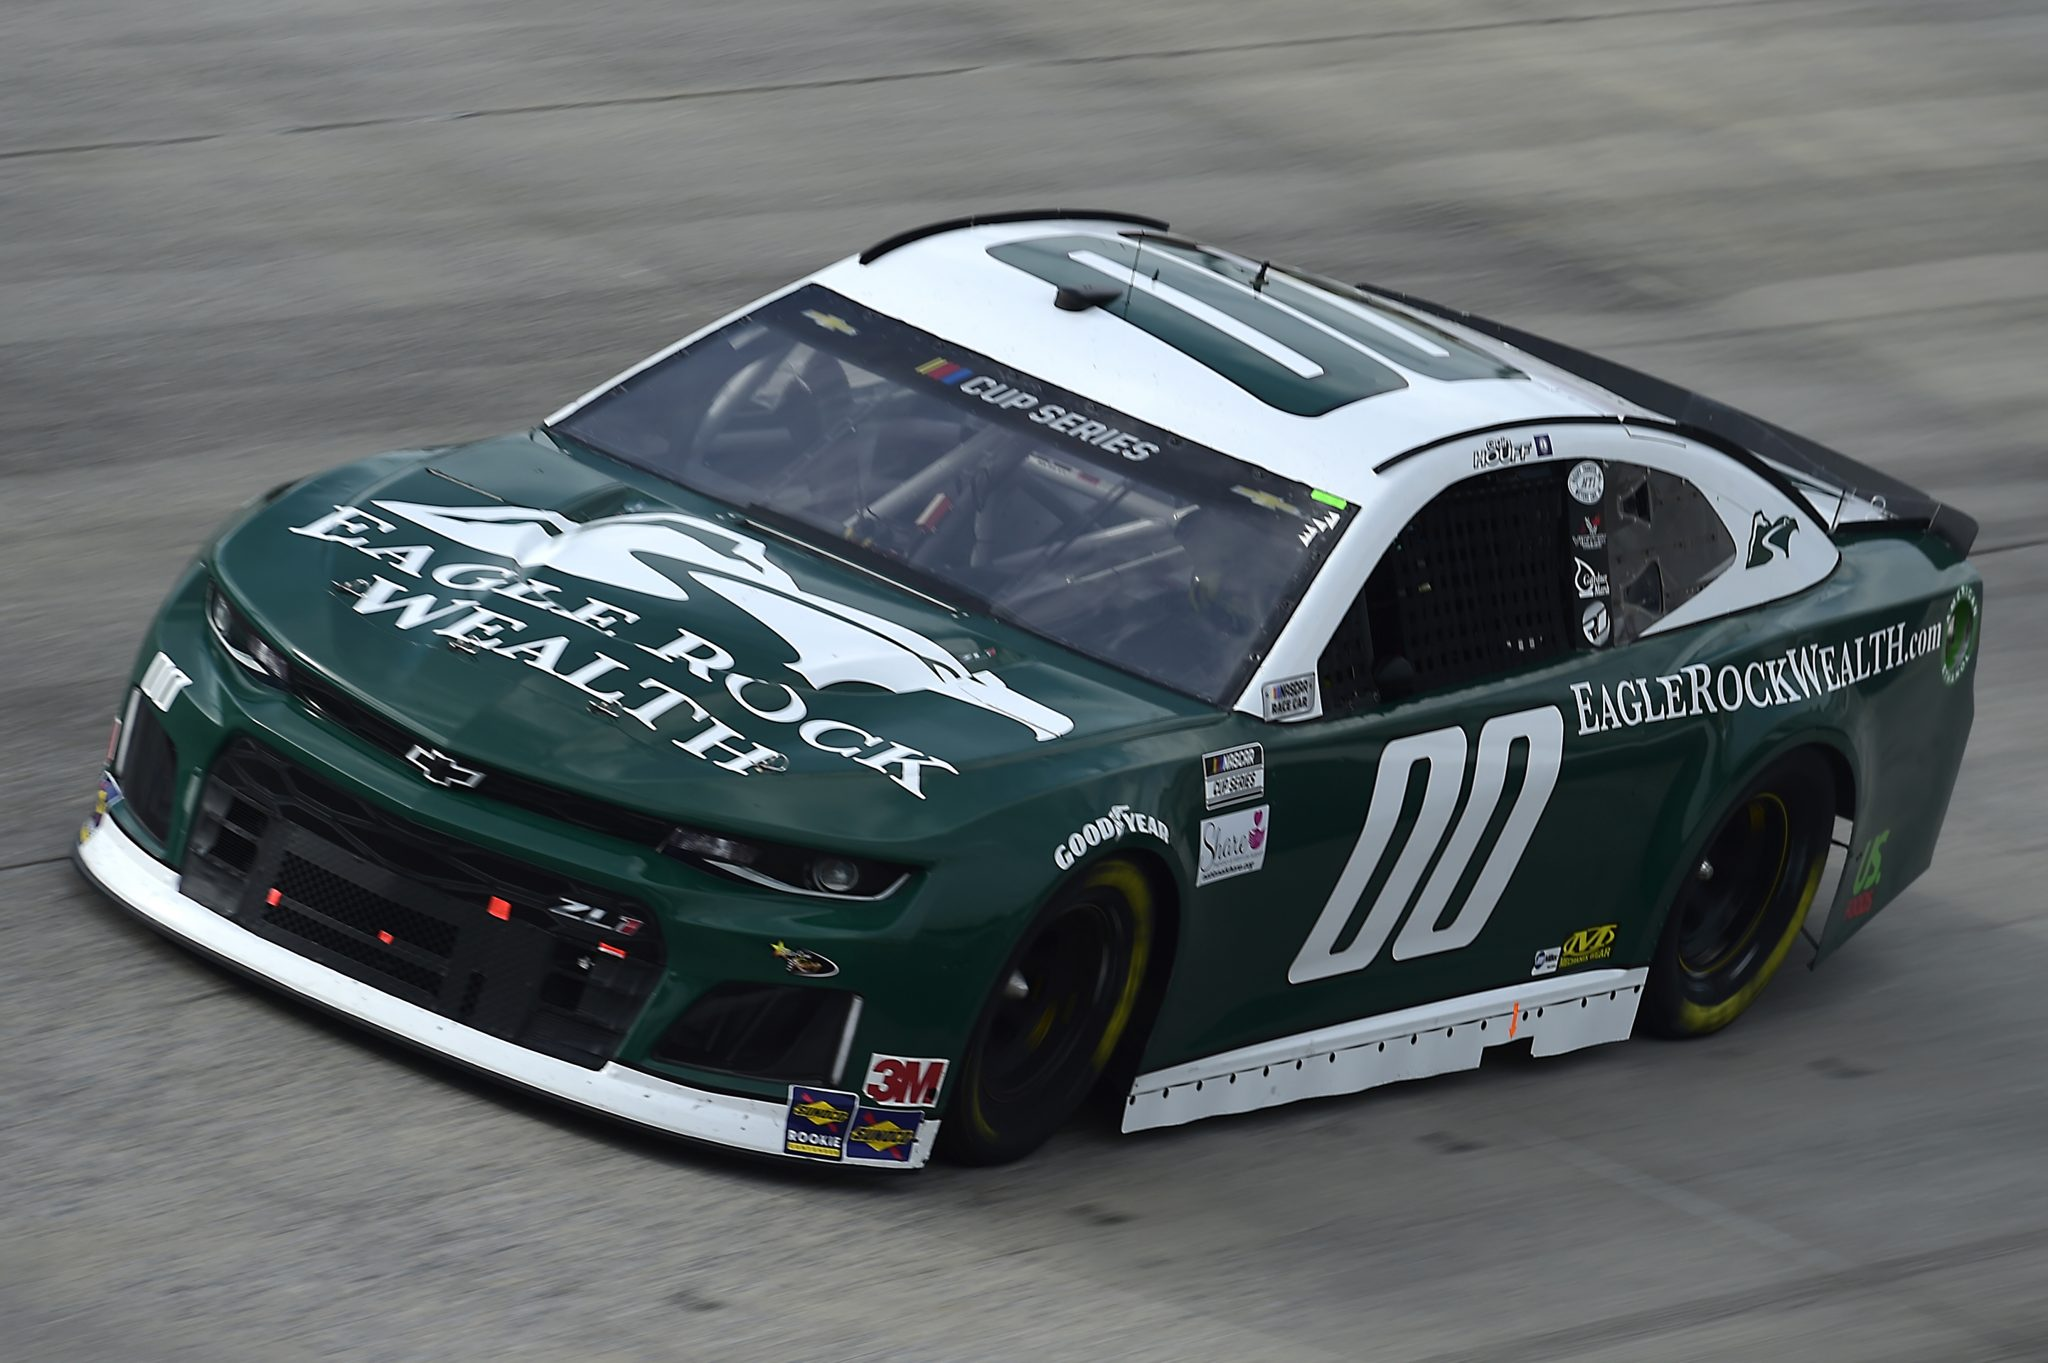 DOVER, DELAWARE - AUGUST 22: Quin Houff, driver of the #00 Eagle Rock Wealth Chevrolet, drives during the NASCAR Cup Series Drydene 311 at Dover International Speedway on August 22, 2020 in Dover, Delaware. (Photo by Jared C. Tilton/Getty Images) | Getty Images